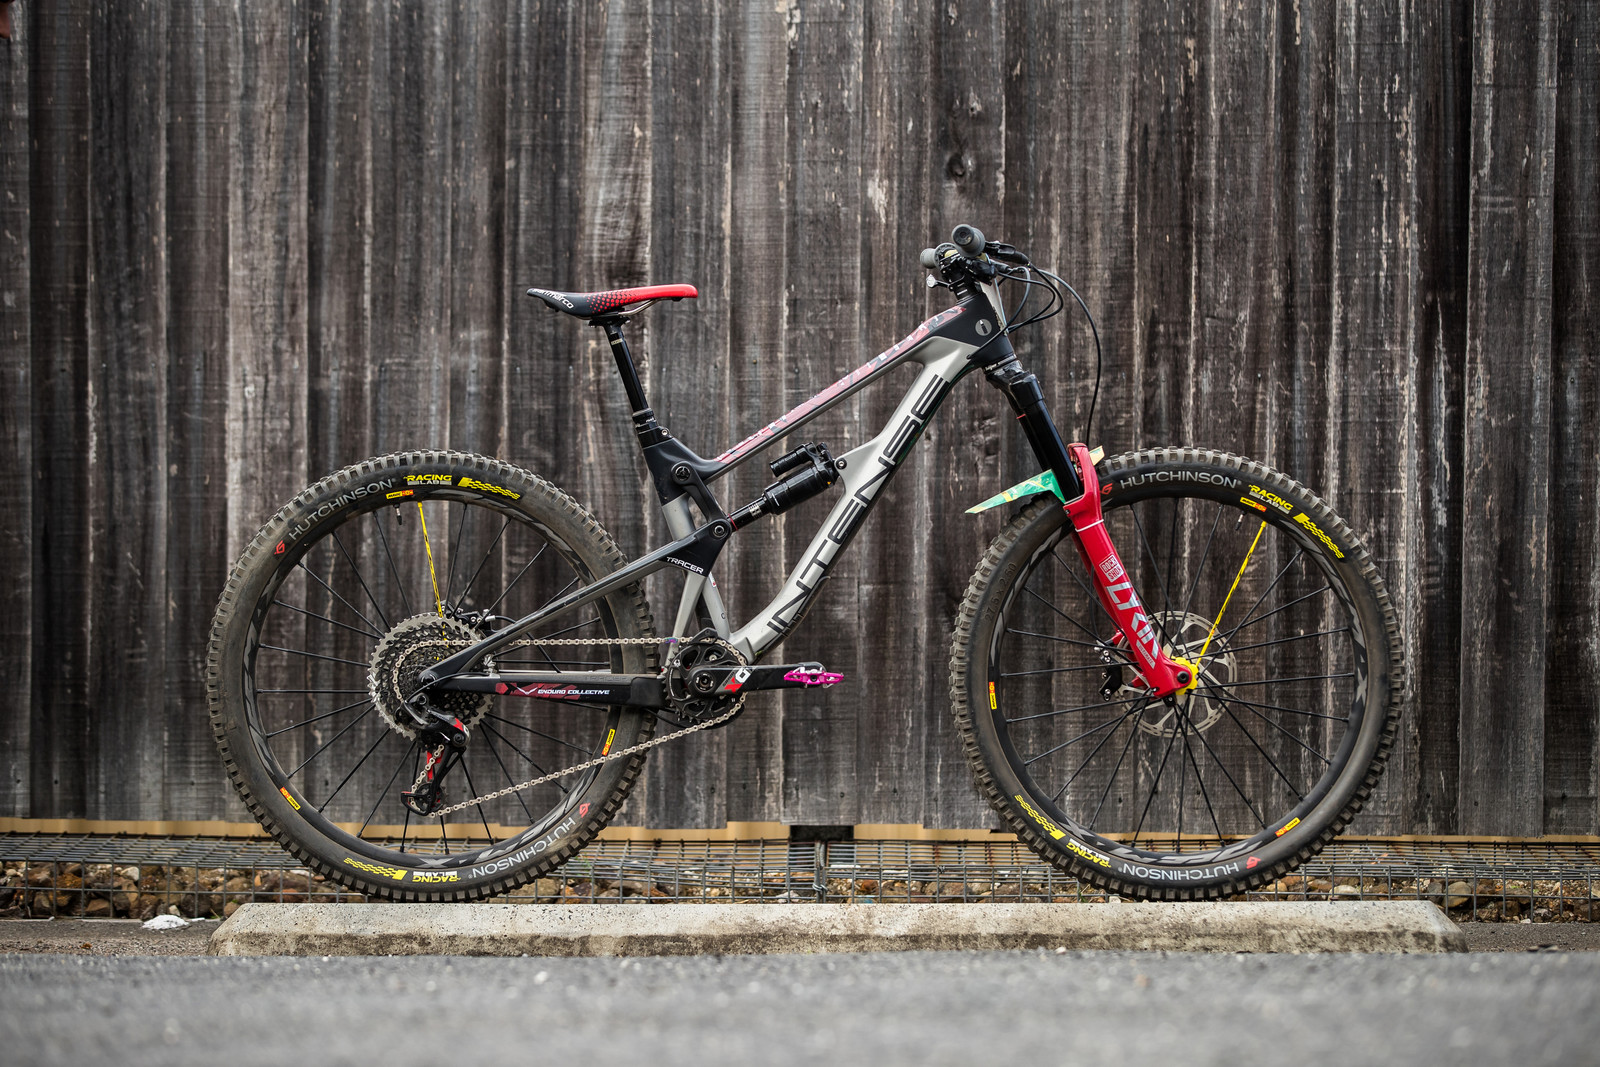 Isabeau Courdurier's Intense Tracer - What's Stock, What's Not - Tasmania Enduro World Series - Mountain Biking Pictures - Vital MTB